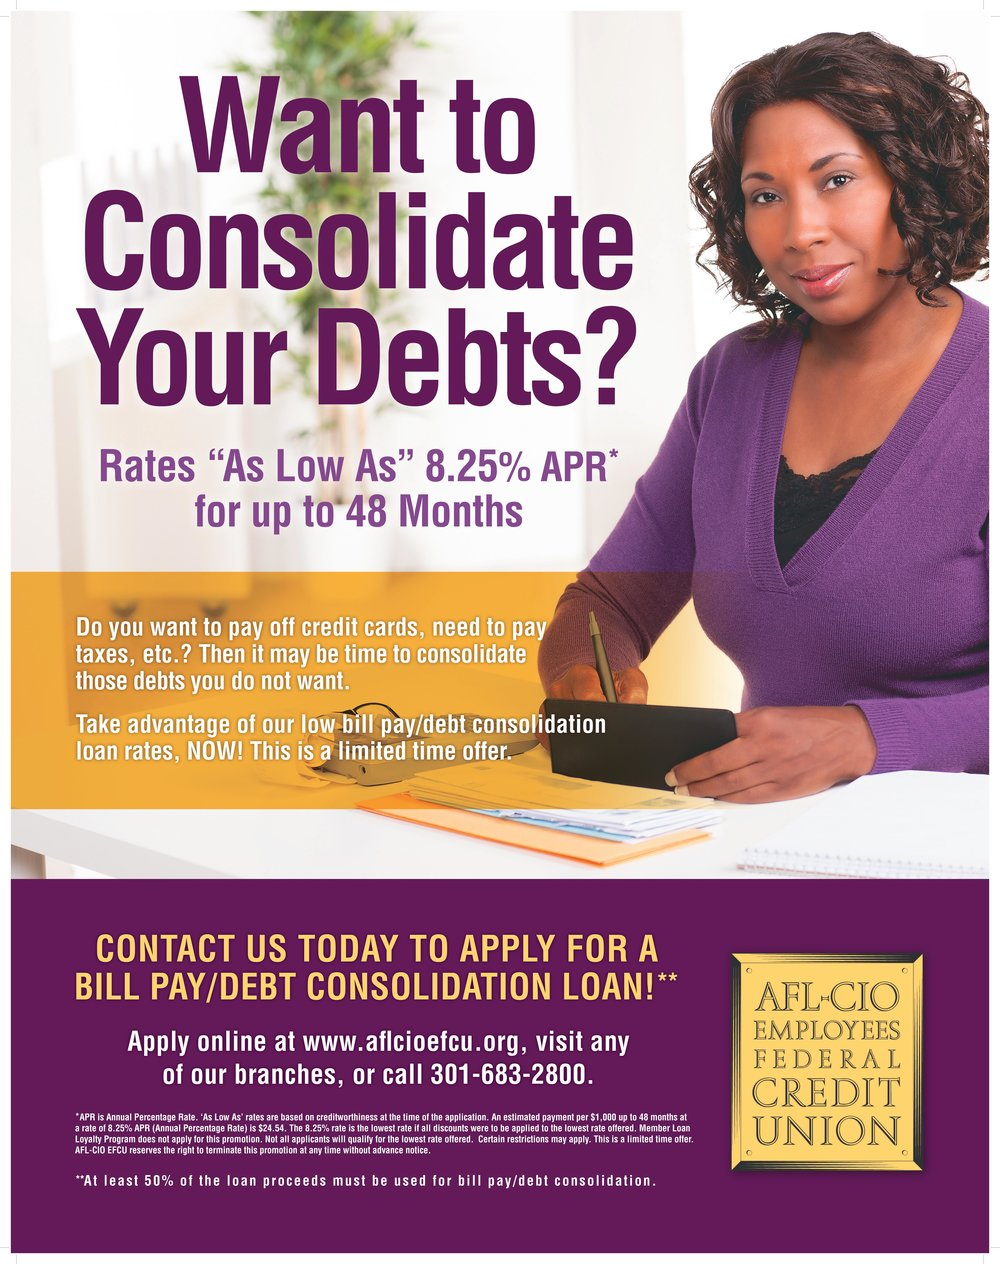 Want to Consolidate Your Debts?